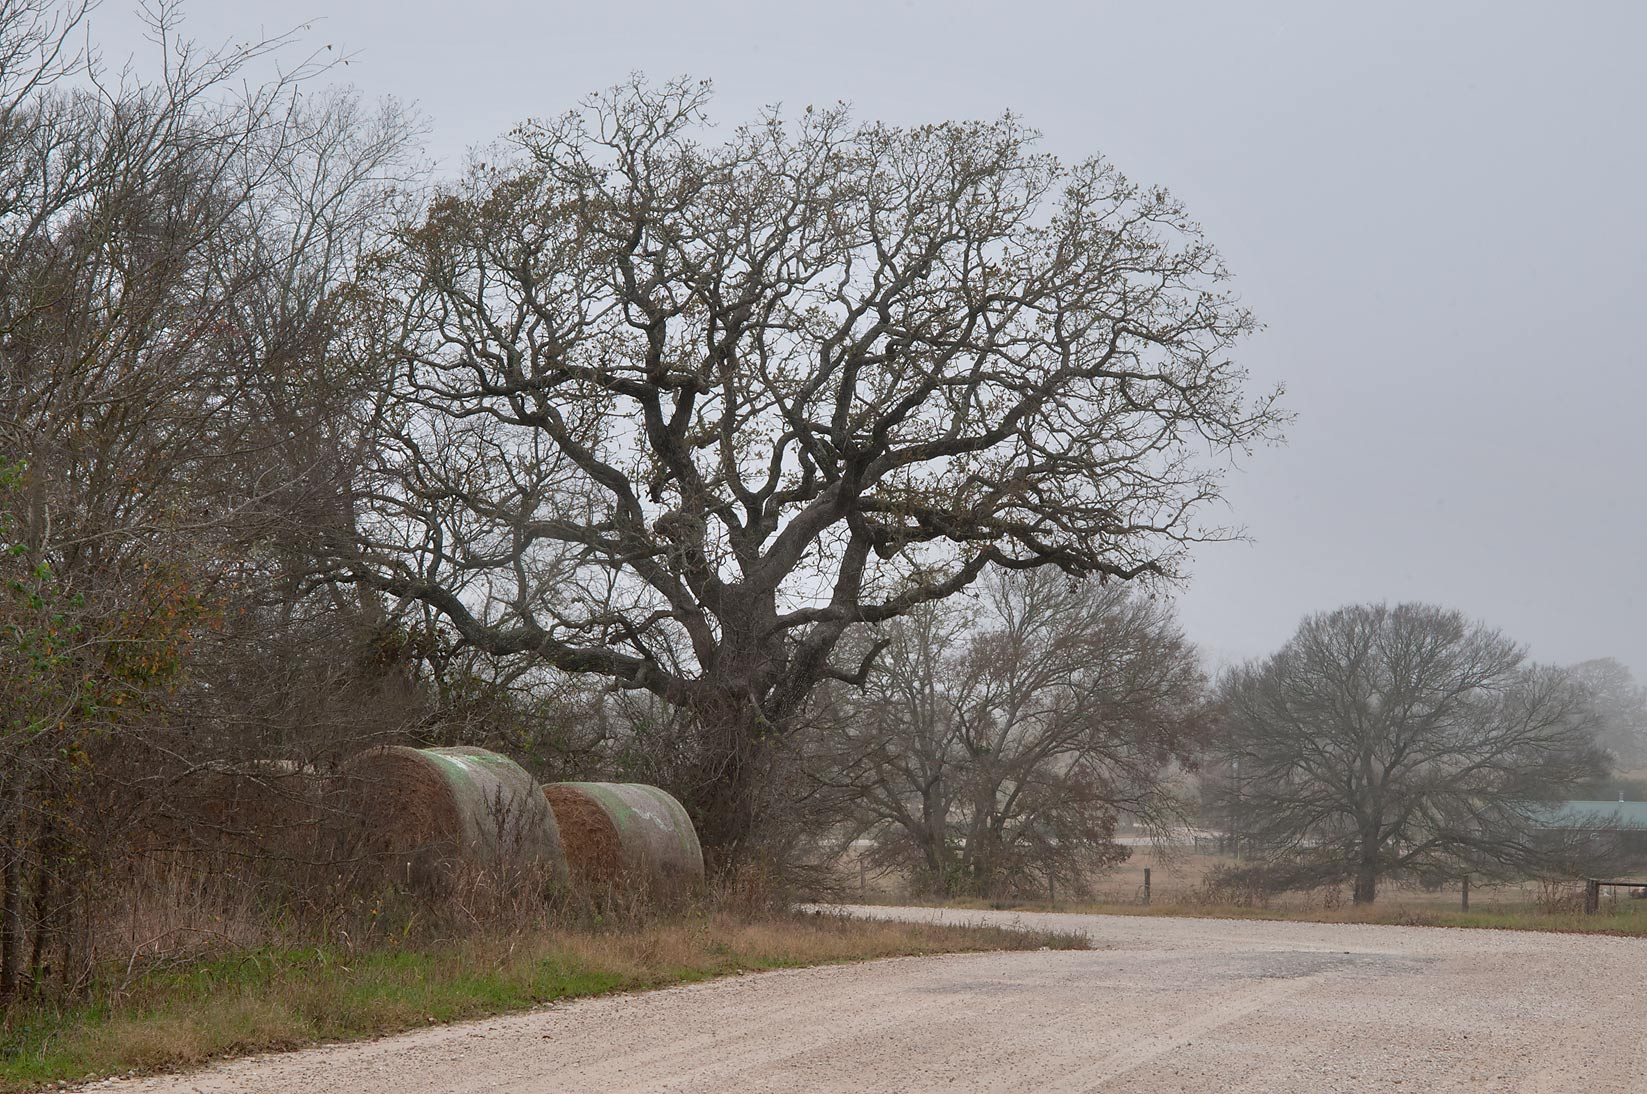 Hay rolls and oak tree at Rd. 180 near Anderson. Texas